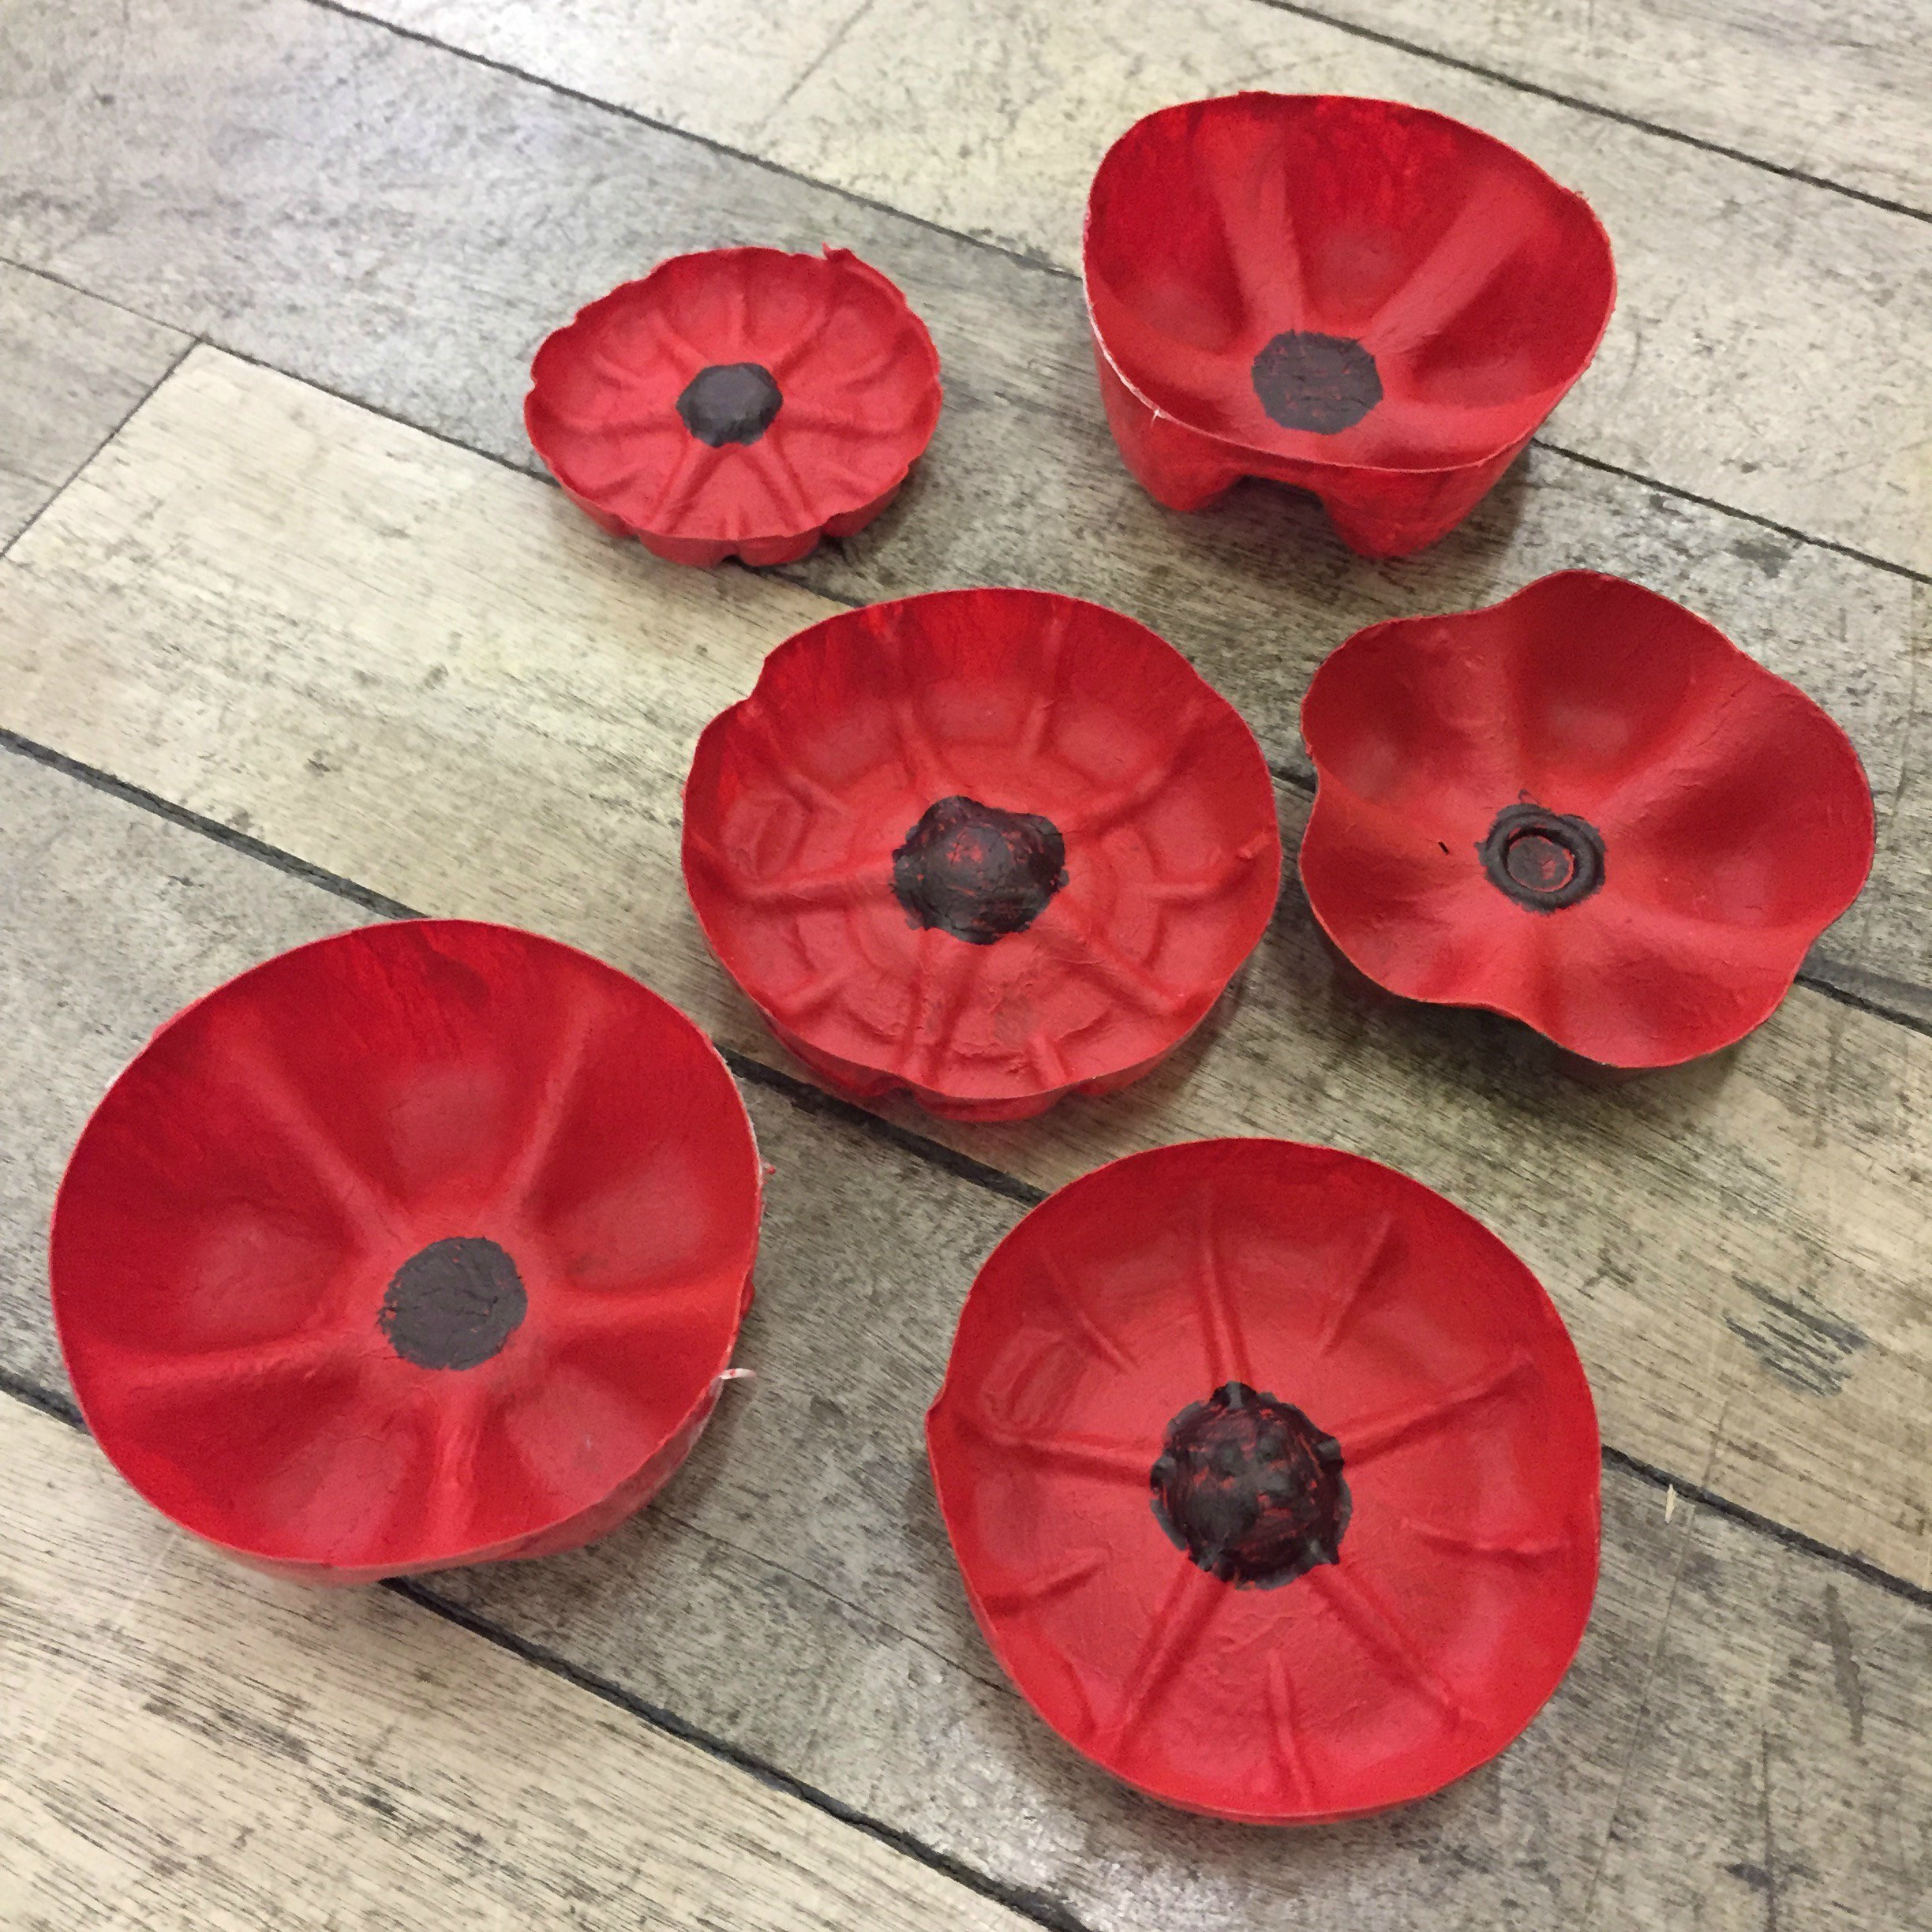 Plastic poppies a remembrance day craft penny blogs plastic poppies remembrance day remembrance sunday mightylinksfo